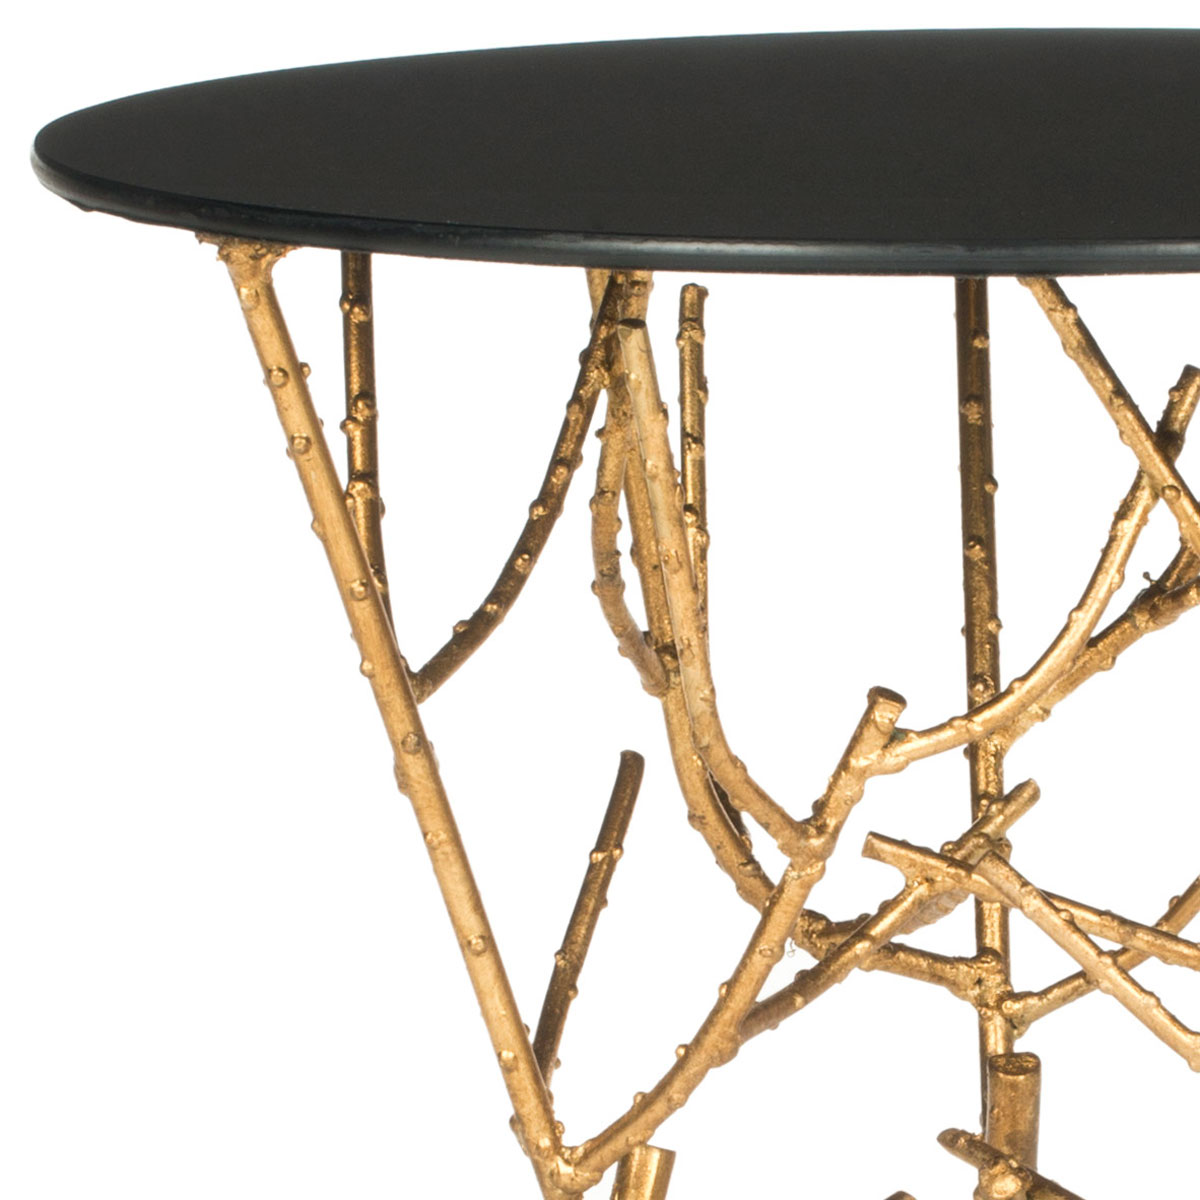 accent tables furniture safavieh detail gold table share this product west elm floor cushion round farmhouse dining plus tablet solid pine bedroom holland home decorators catalog